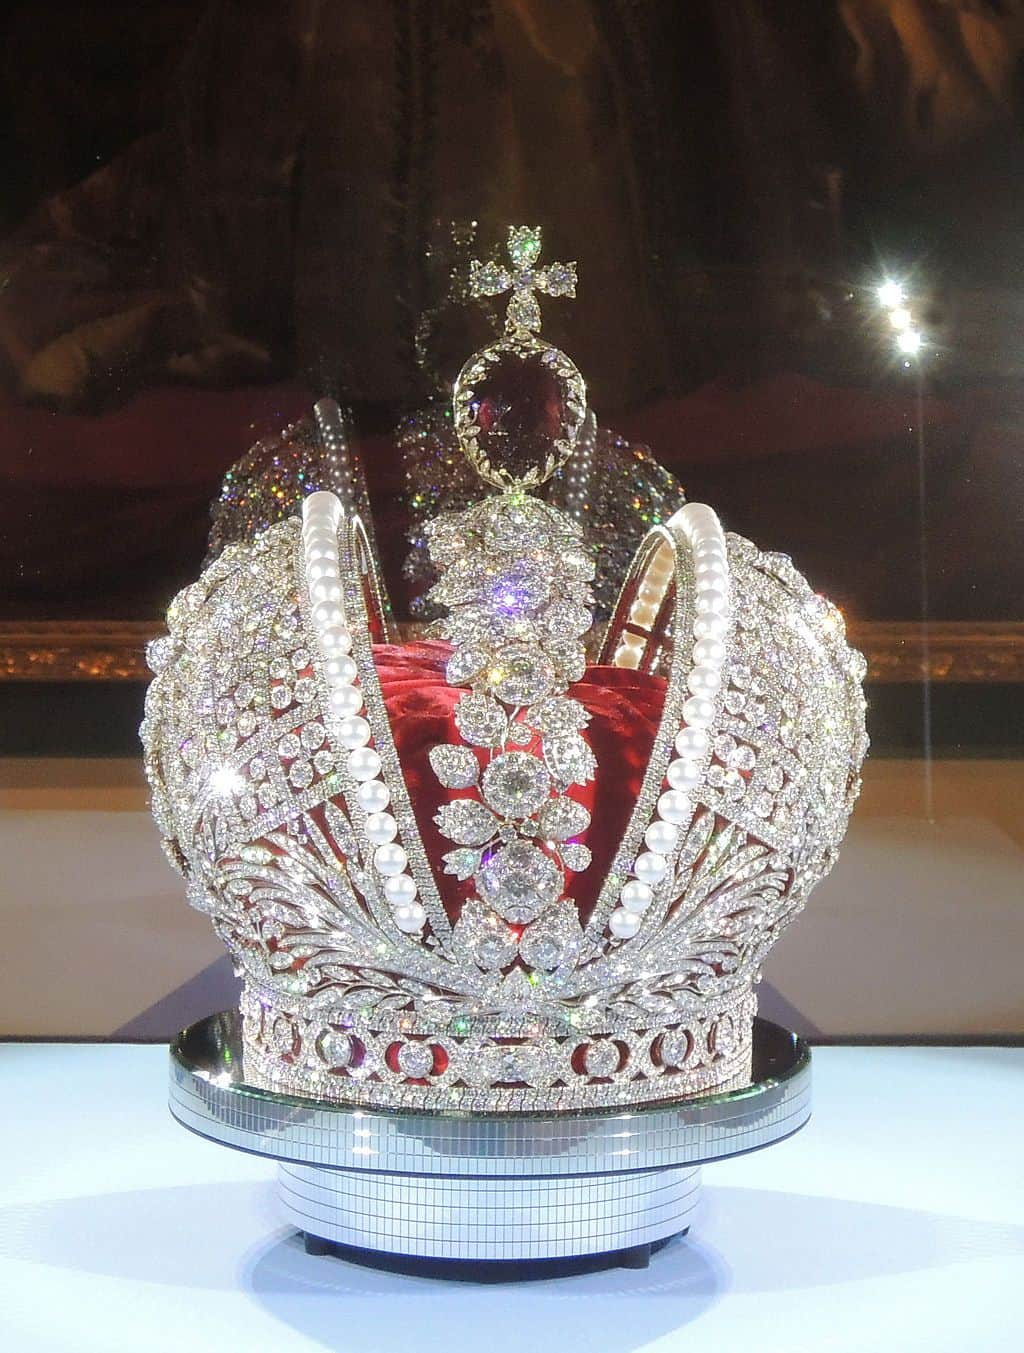 Replica of Great Imperial Crown of Russia by Smolensk Diamonds Company - Photo by Shakko